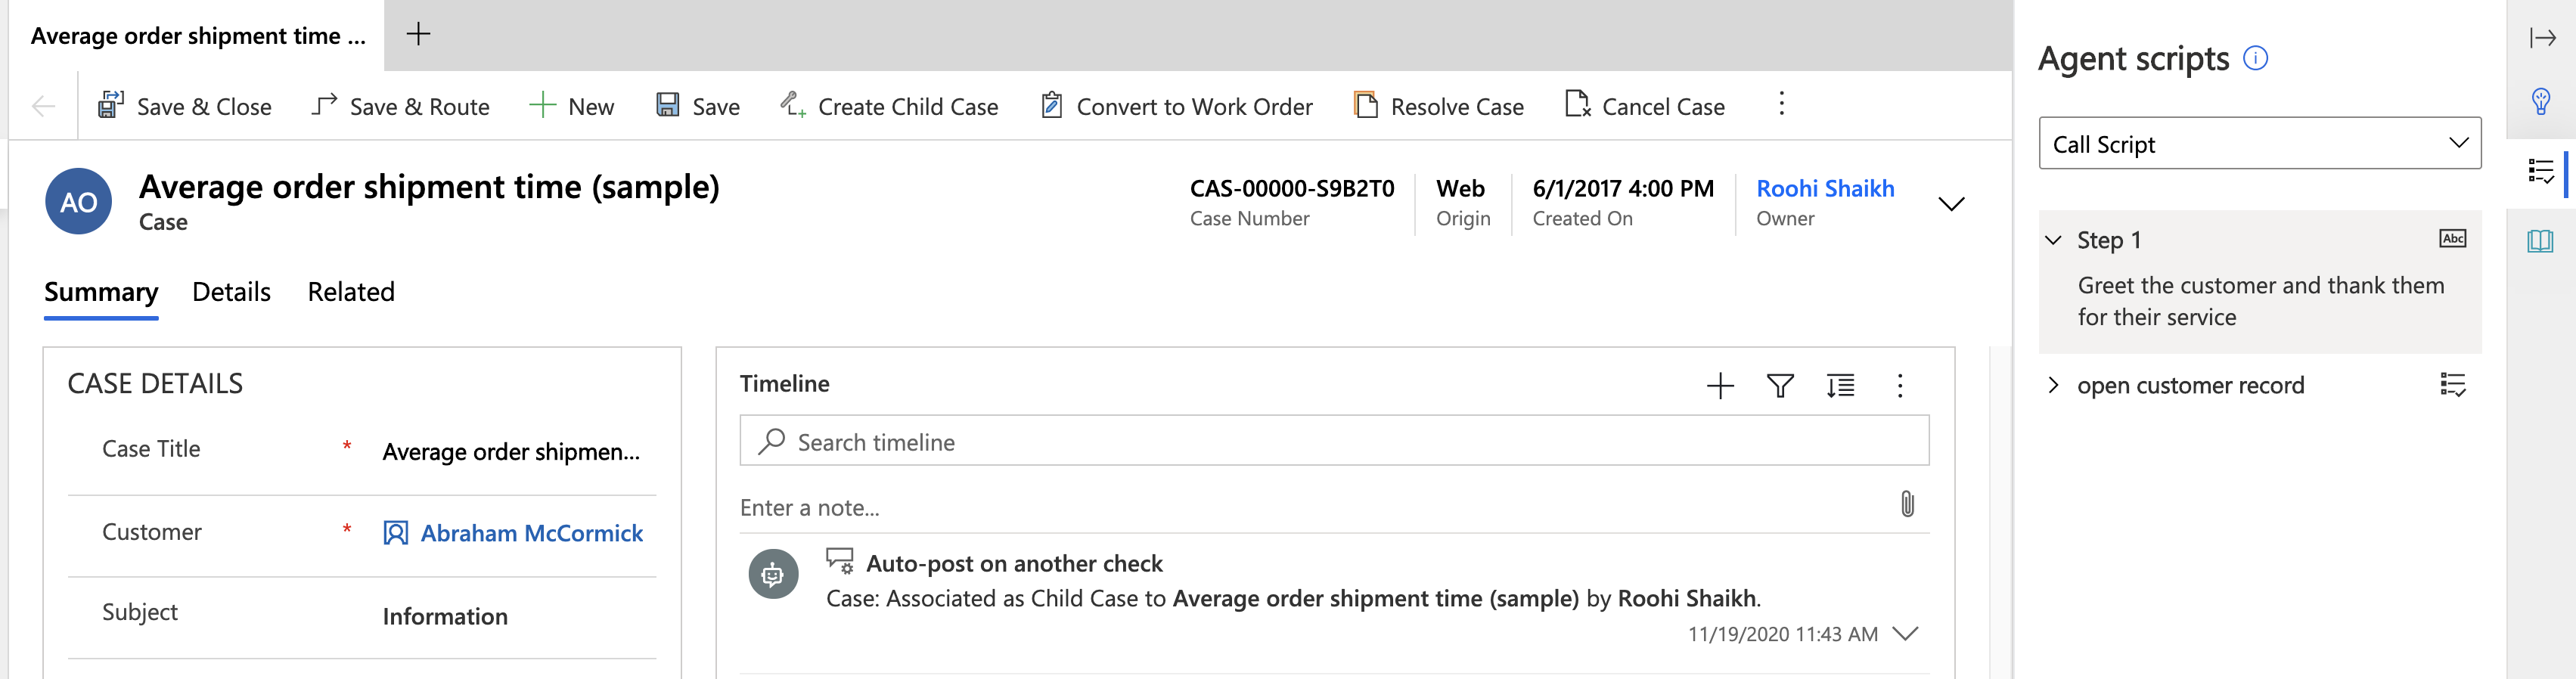 Release 2020 Wave 2 - Agent Scripts and Macros as part of Customer Service workspace explored